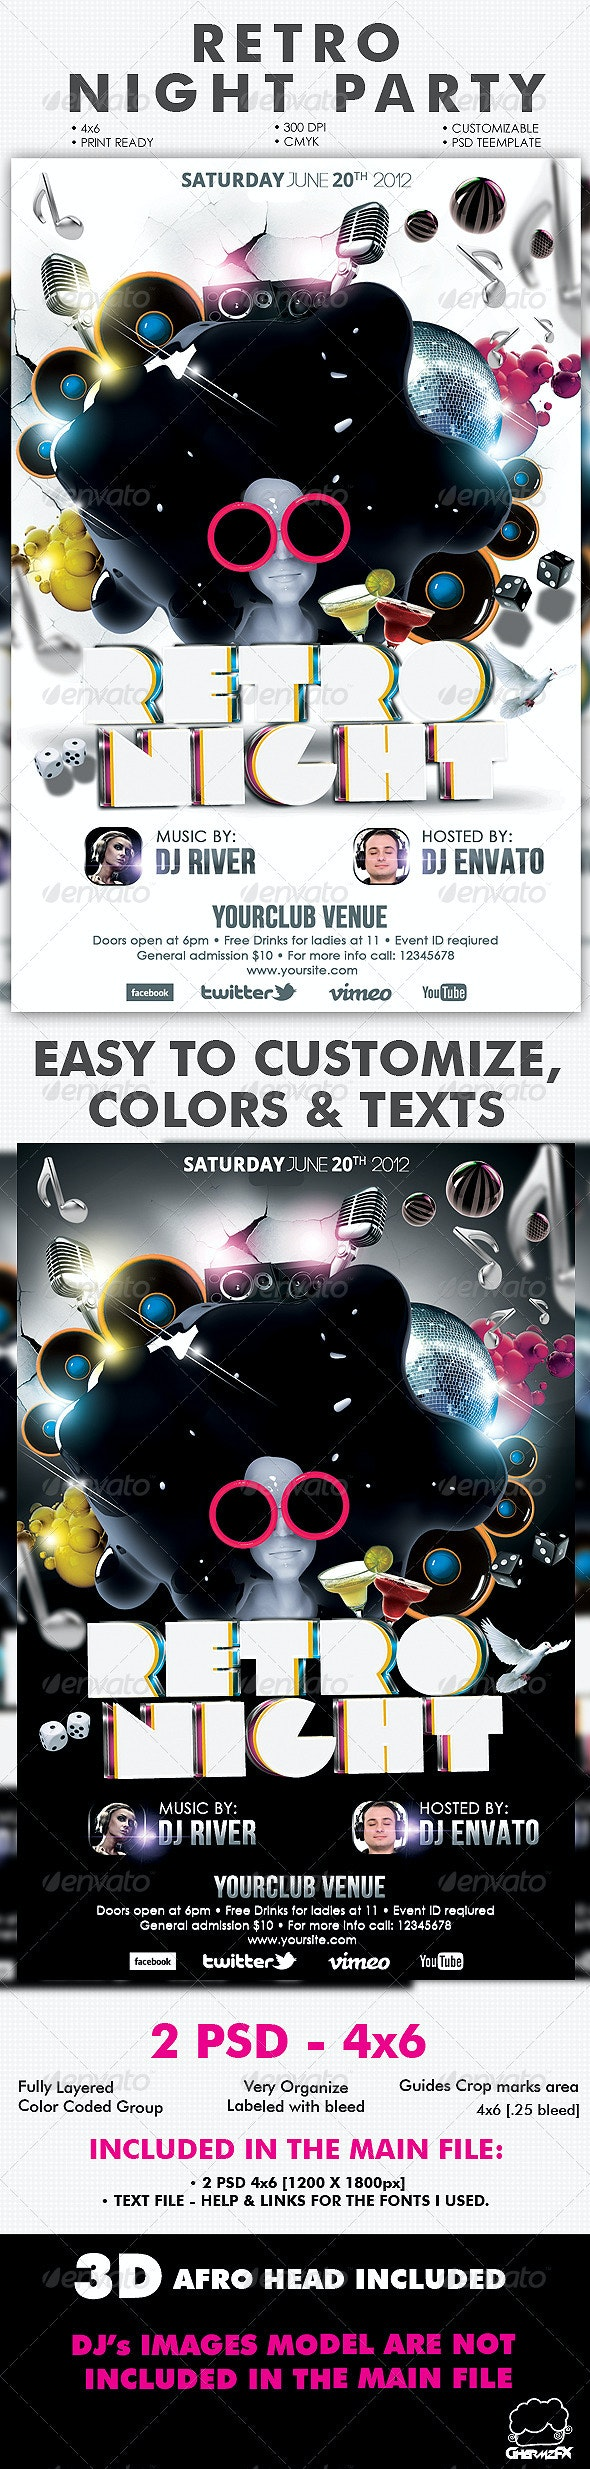 Retro Night Party Flyer Template - Flyers Print Templates